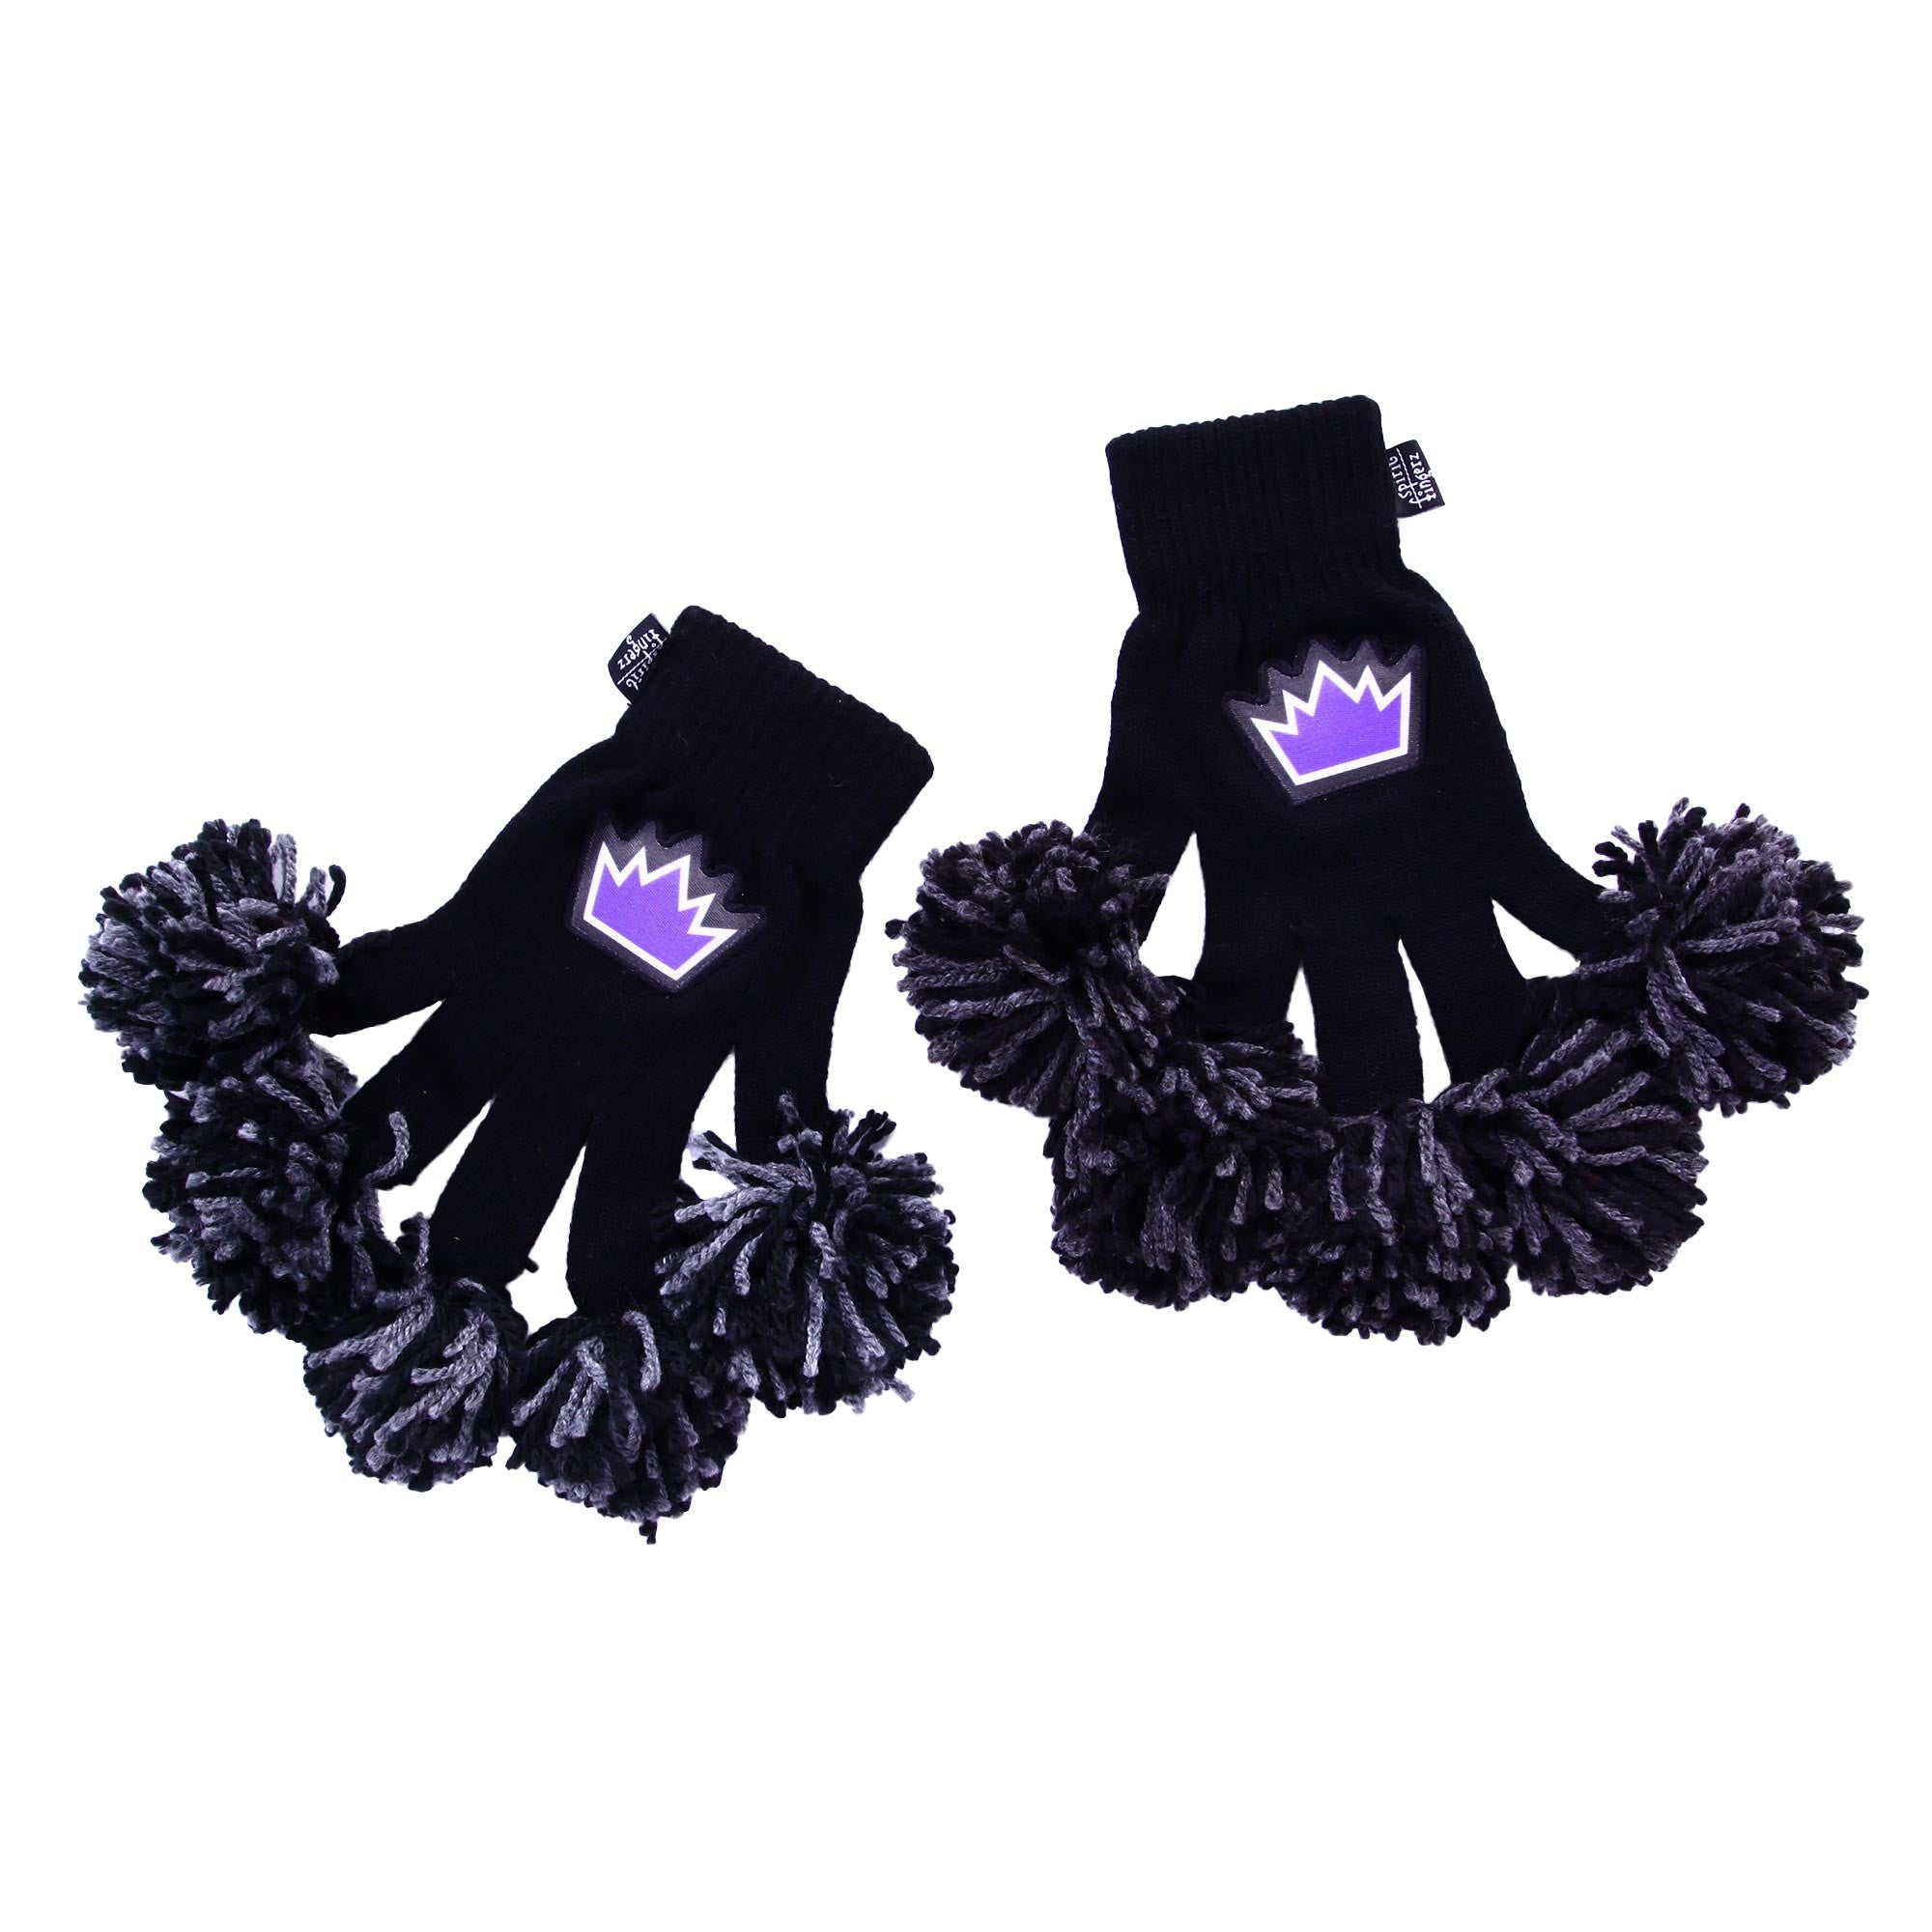 Sacramento Kings NBA Spirit Fingerz Cheerleading Pom-Pom Gloves